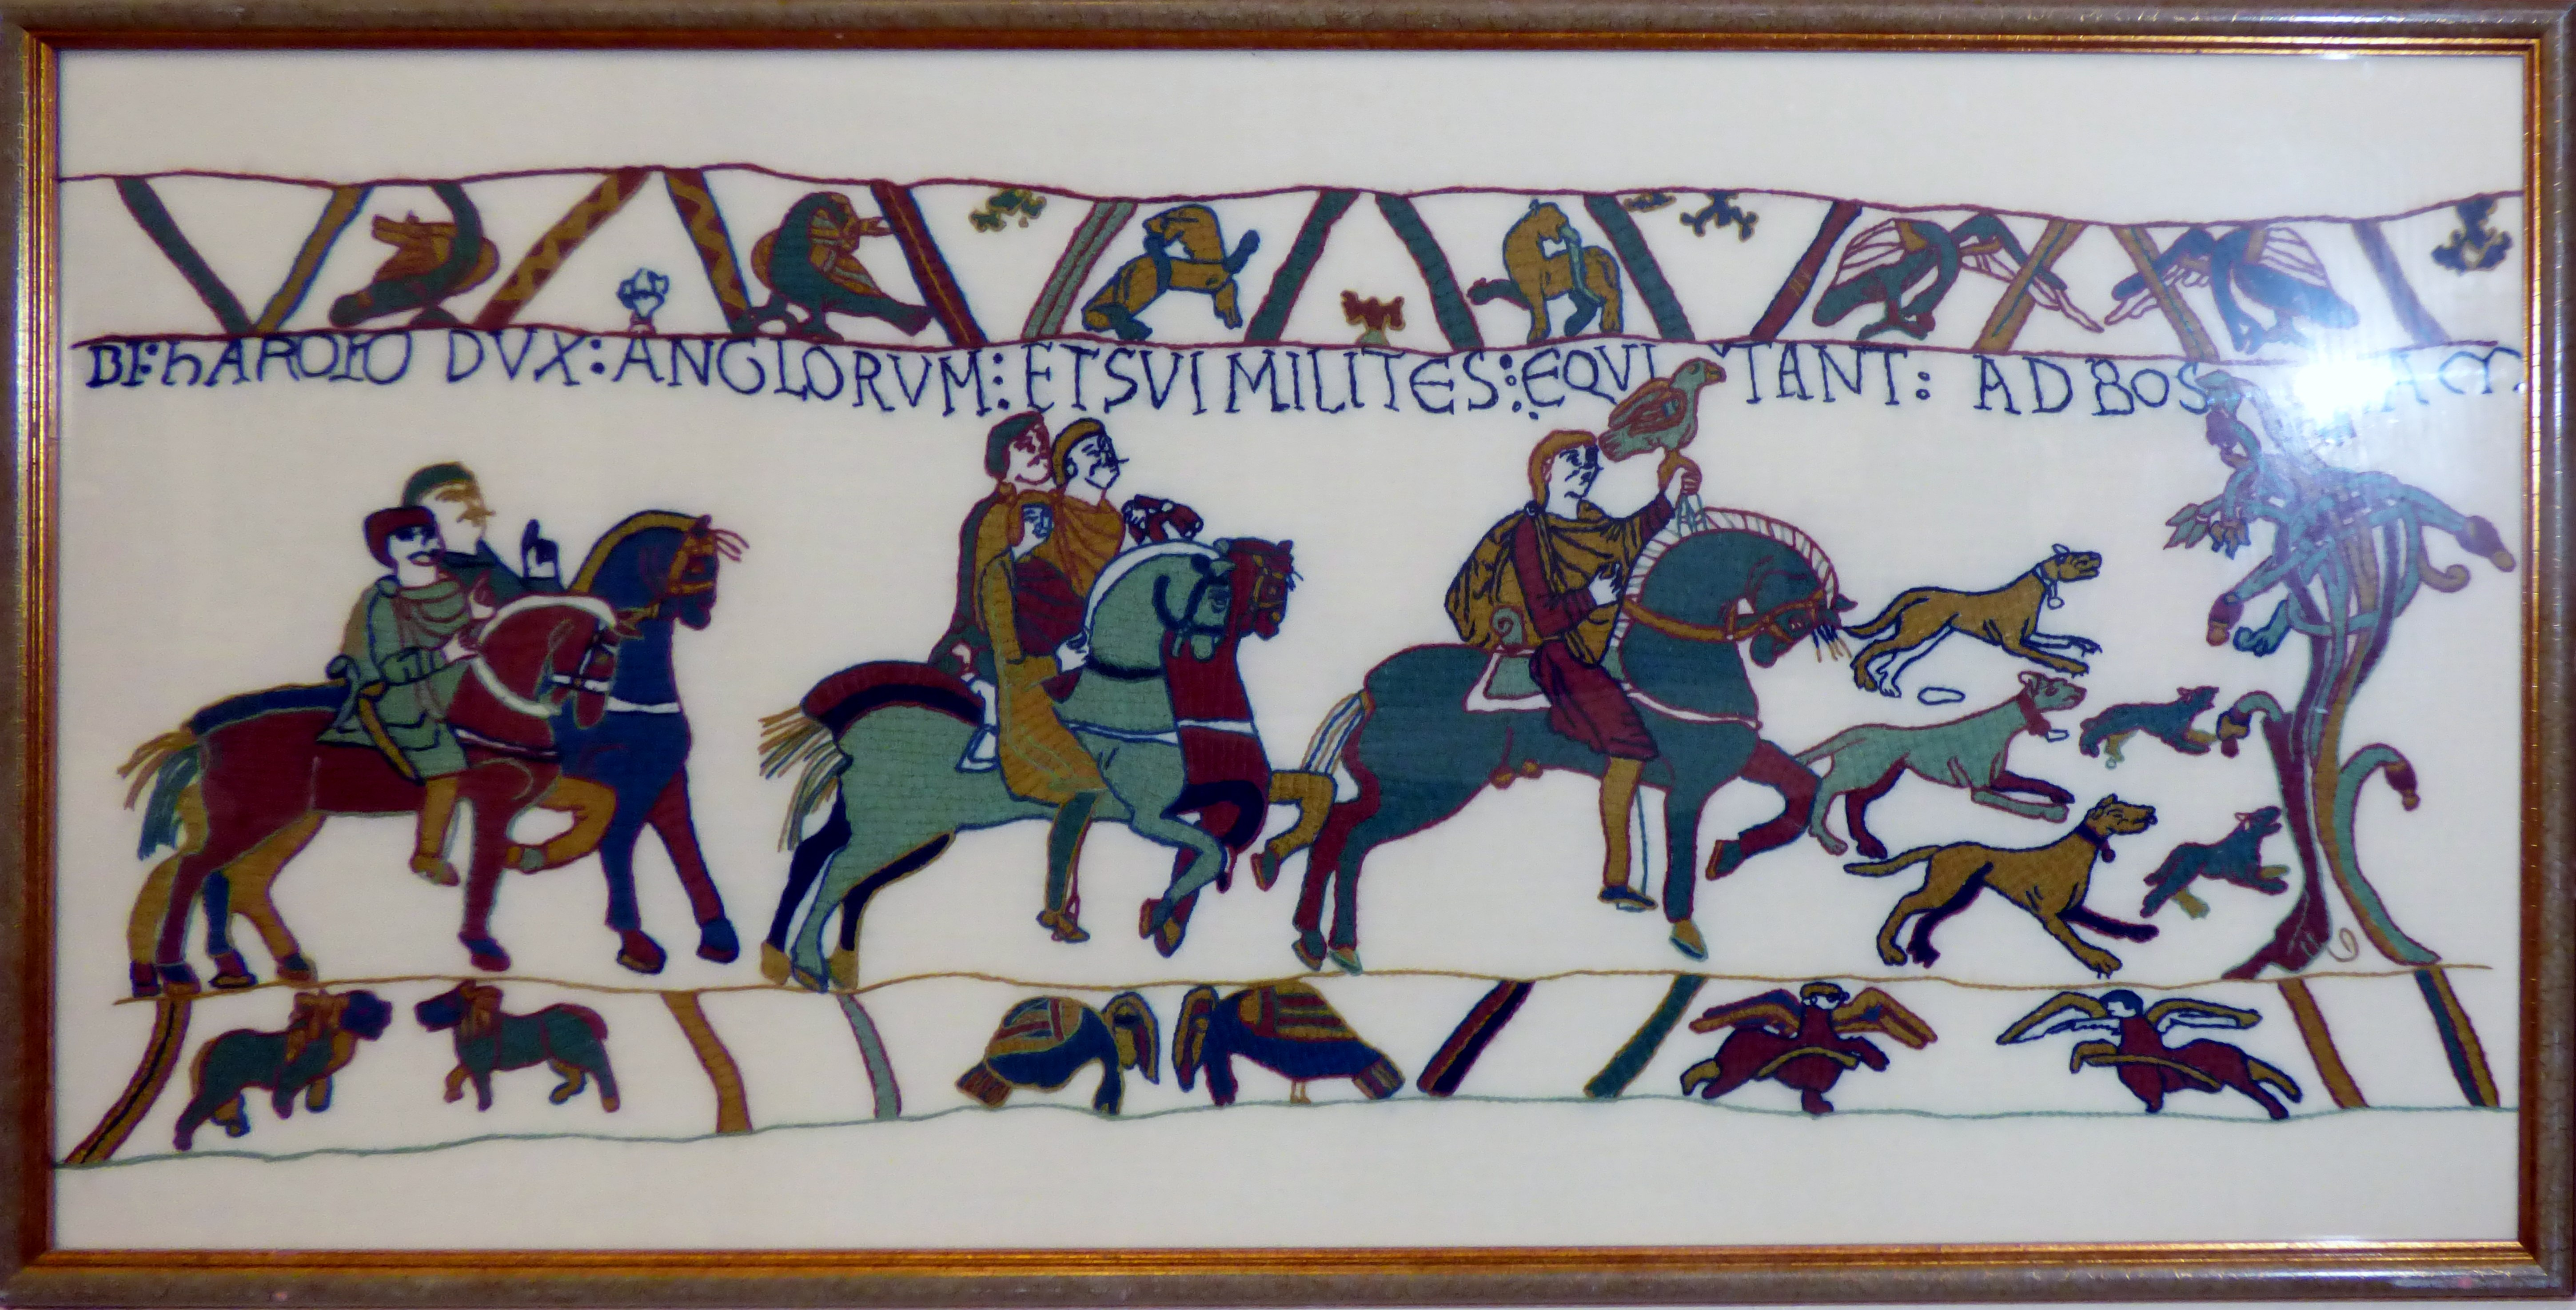 BAYEUX TAPESTRY SCENE by Fiona McCabe, Bayeux stitch in wools on pre-printed fabric